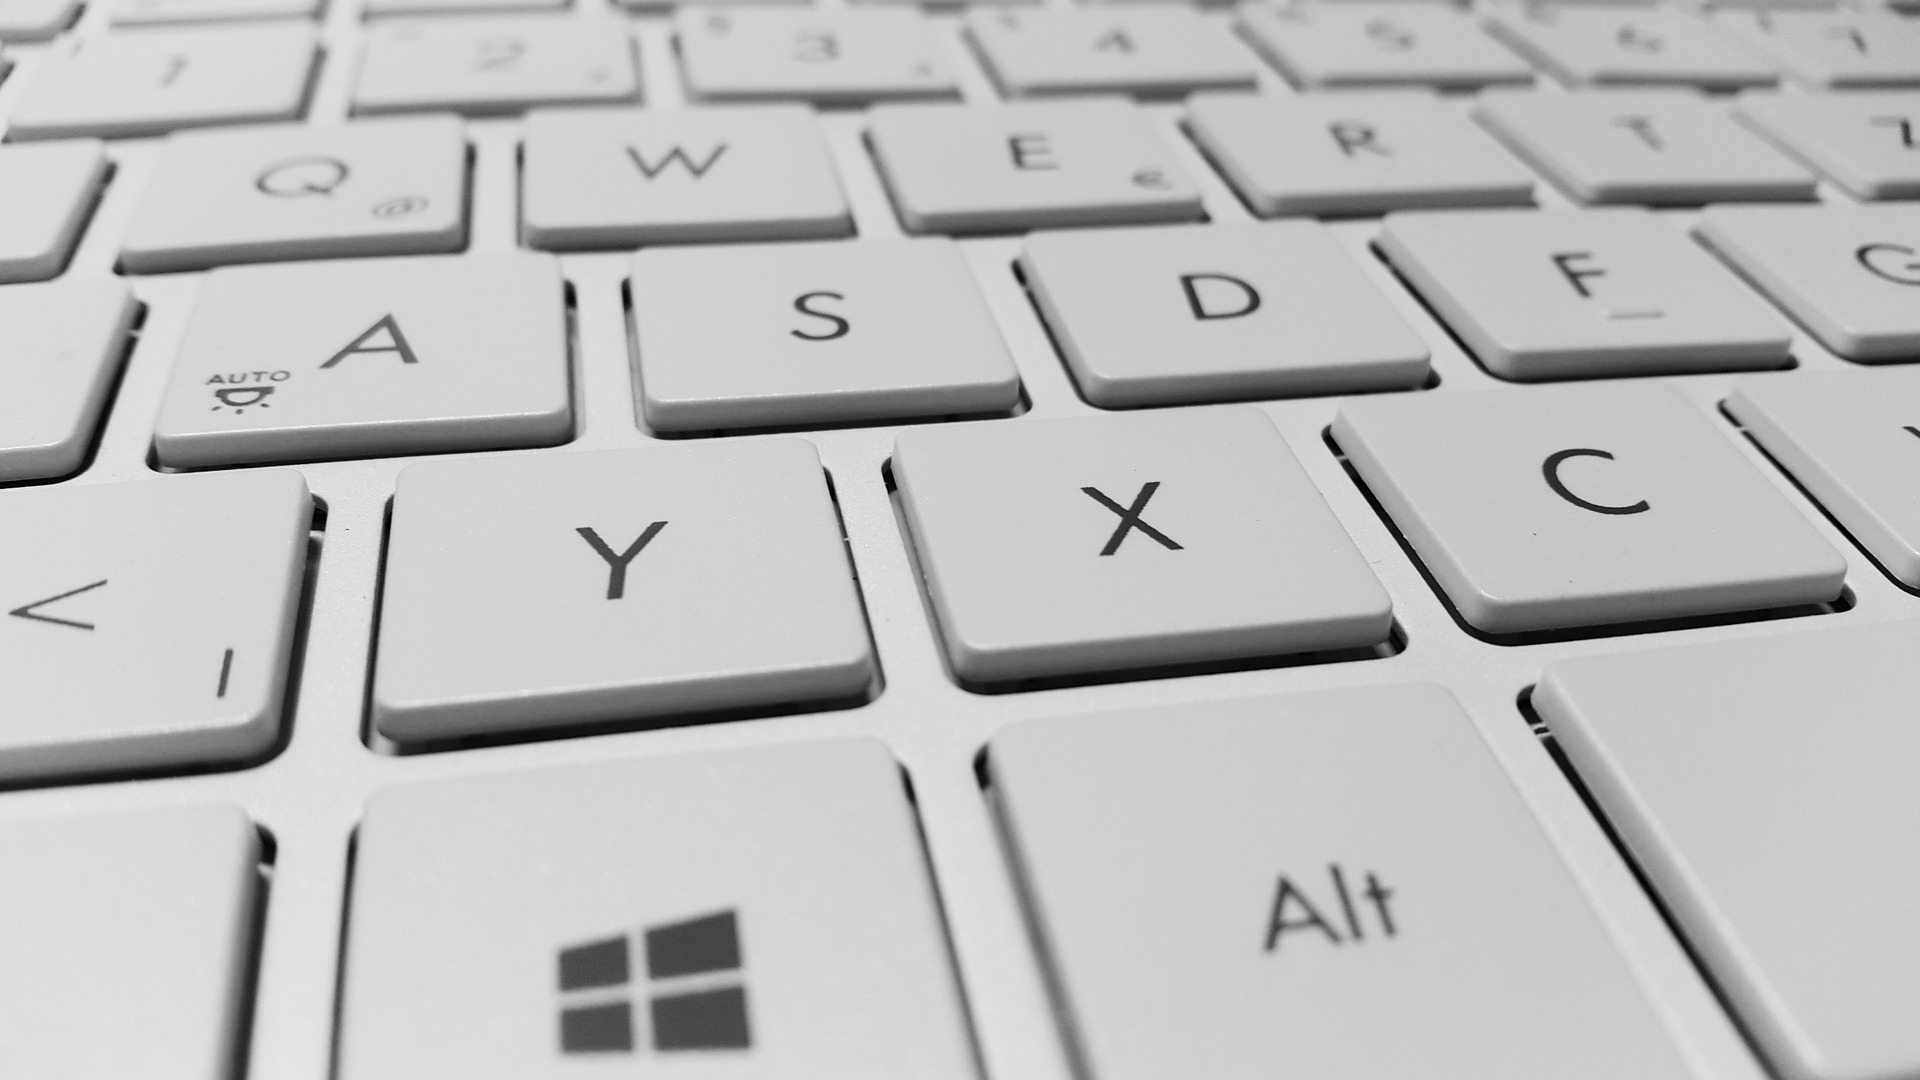 A zoomed-in shot shows keys on a white keyboard.